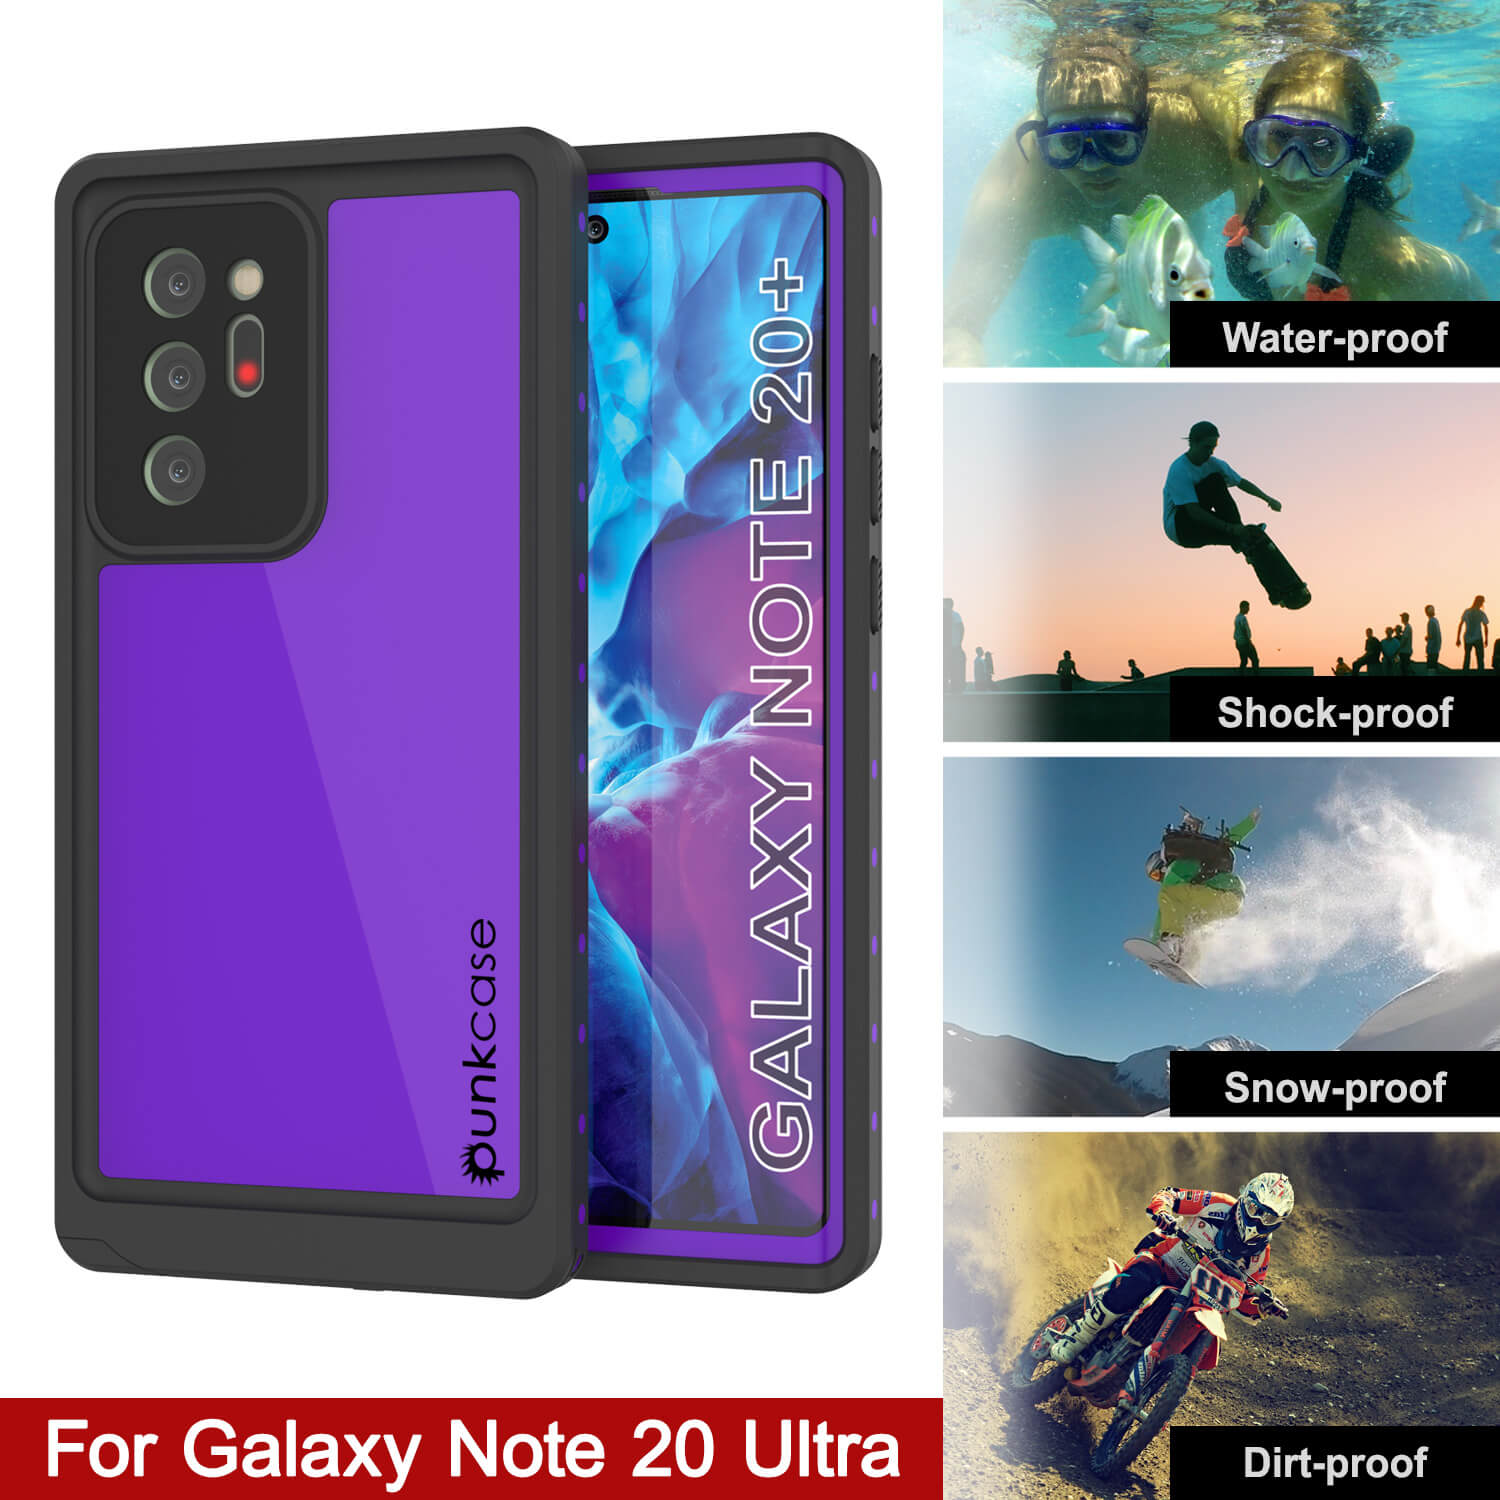 Galaxy Note 20 Ultra Waterproof Case, Punkcase Studstar Purple Series Thin Armor Cover